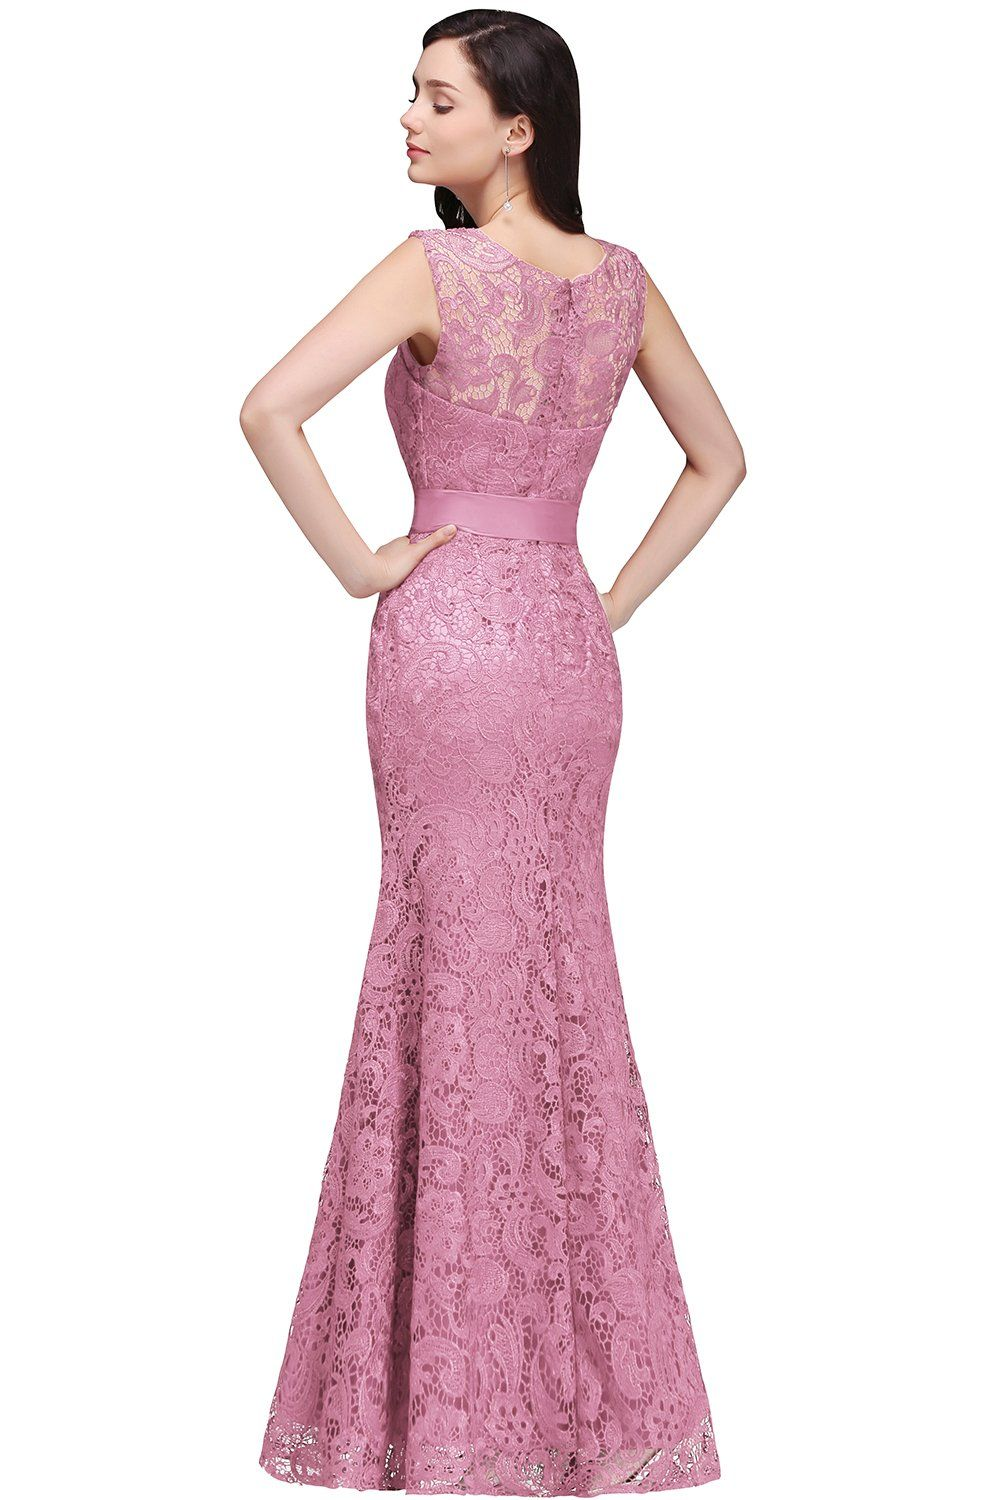 Misshow pink lace mermaid evening gowns sheer backless